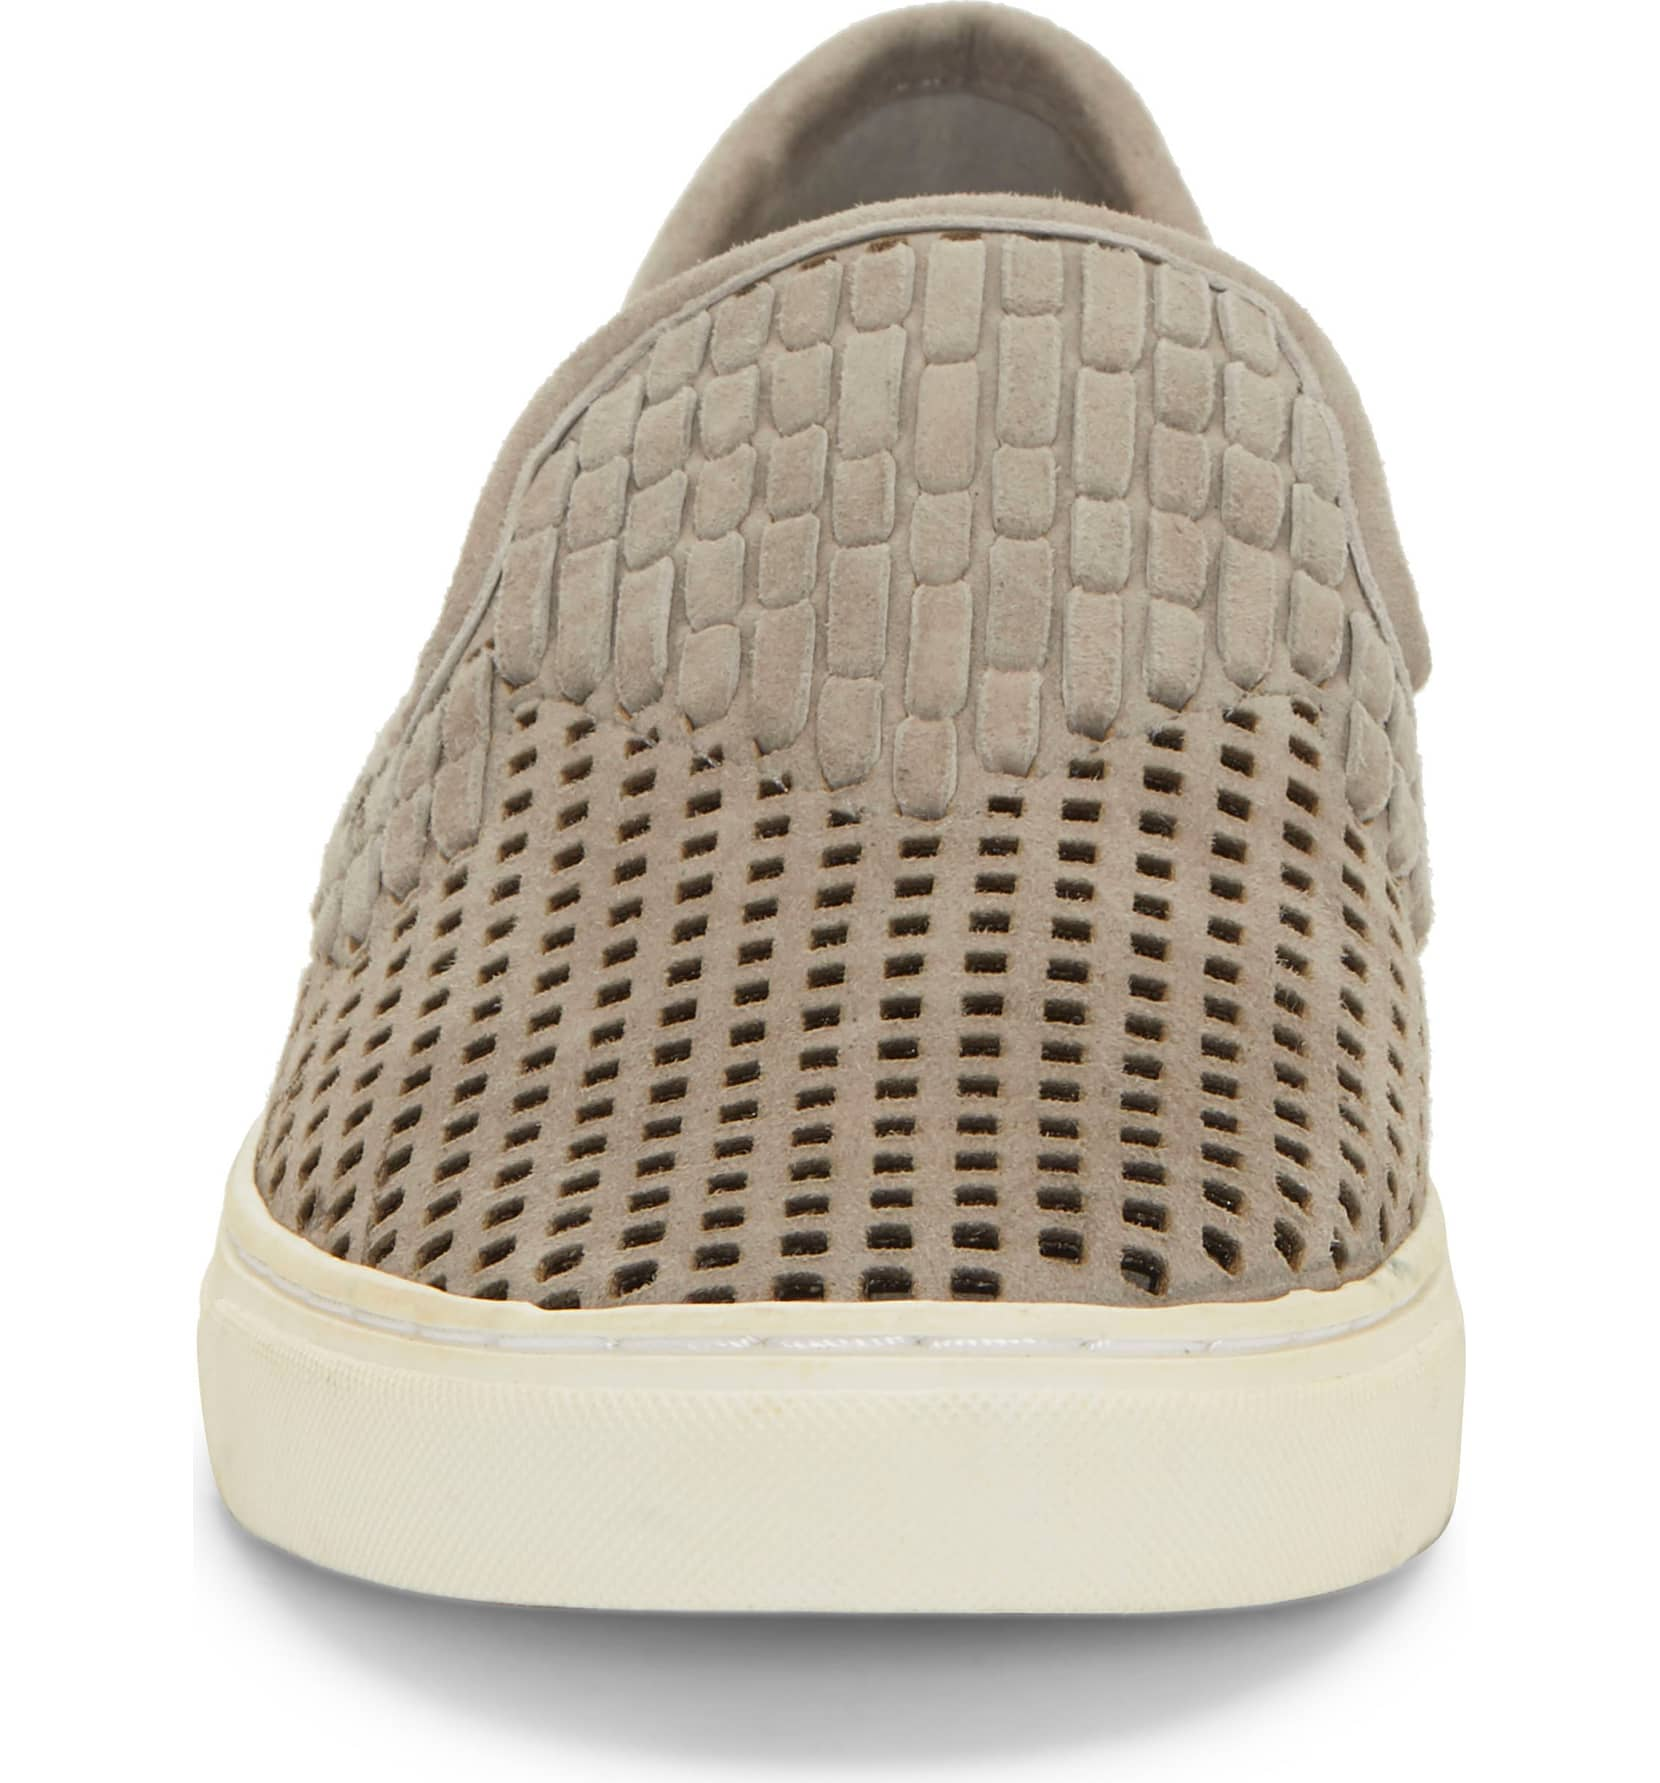 Vince-Camuto-Bristie-Storm-Grey-Leather-Woven-White-Sole-Slip-On-Sneakers thumbnail 14